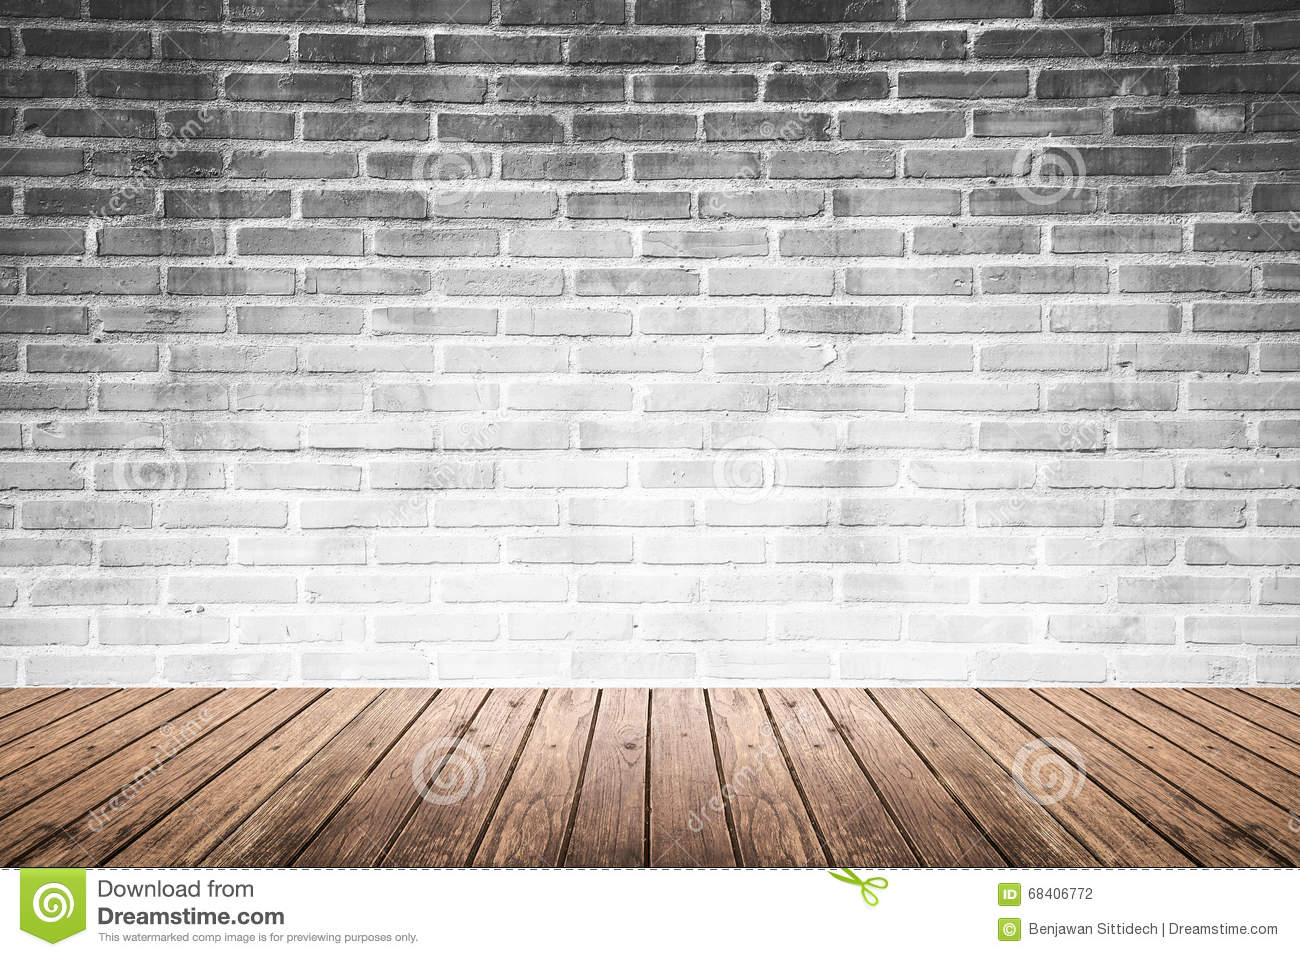 Gray Cartoon Brick Wall Texture : Gray brick wall in an interior royalty free stock image